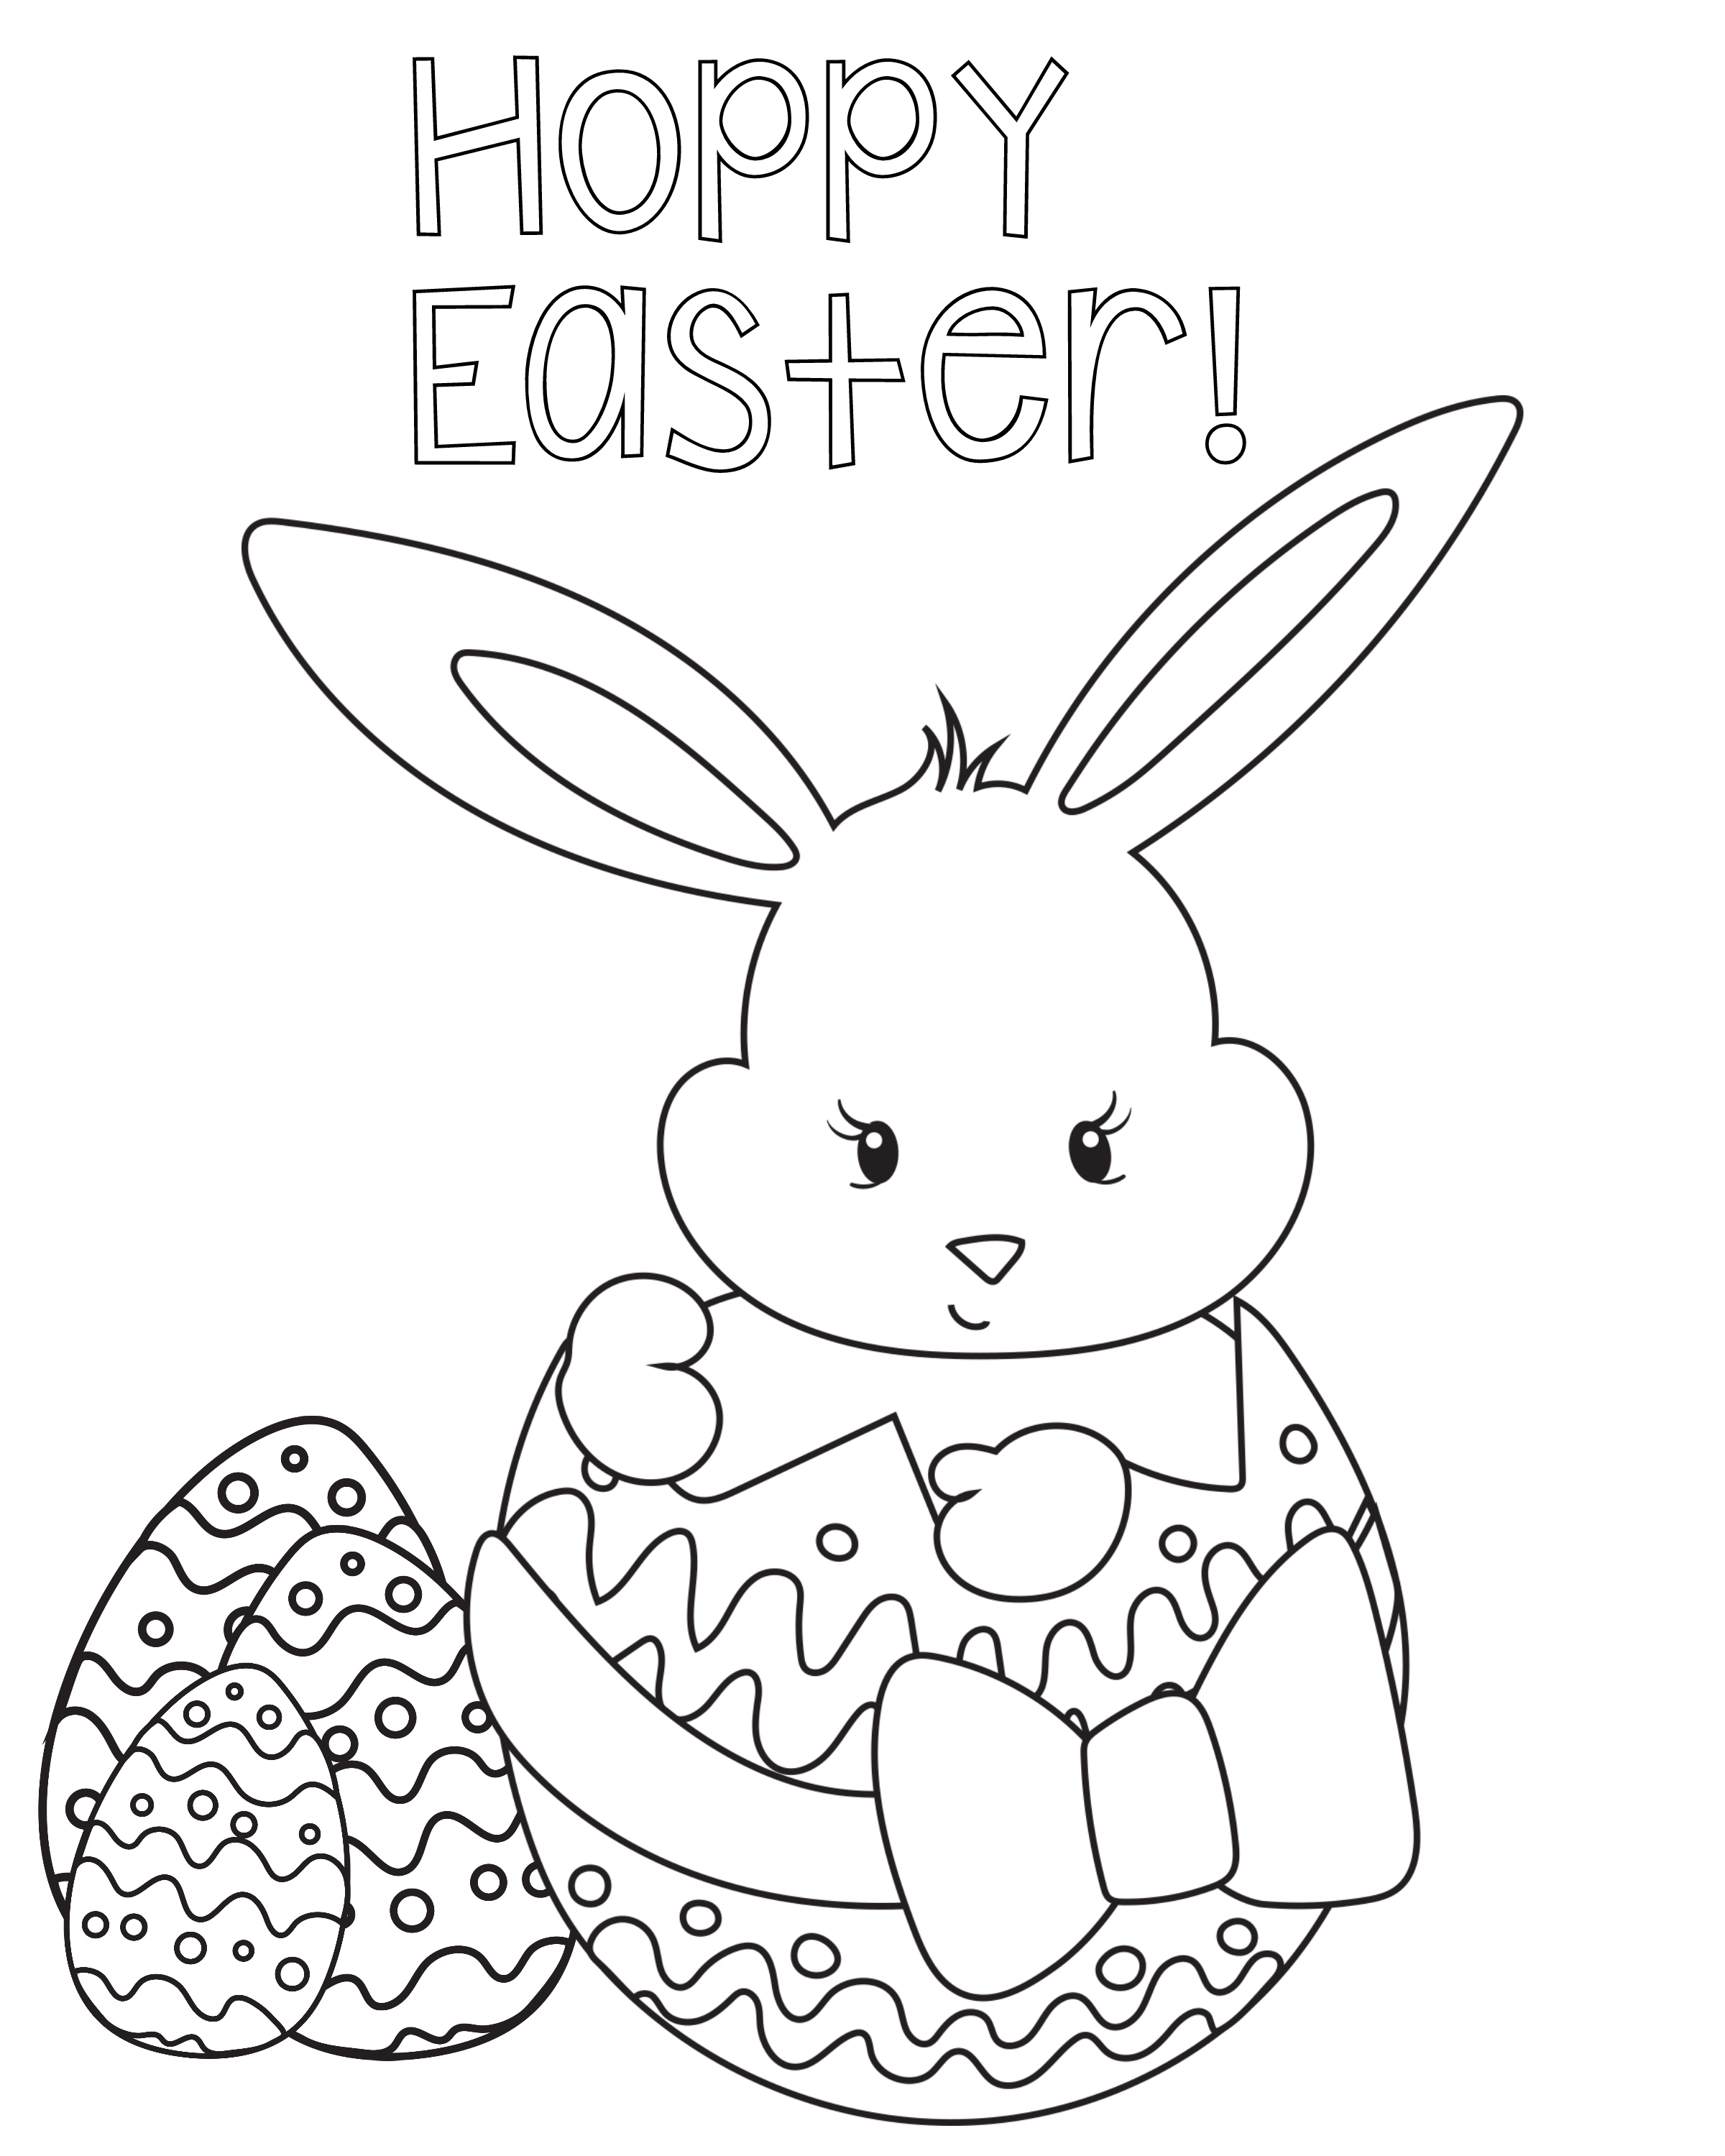 bunny pictures to color for easter - Free Easter Coloring Pages